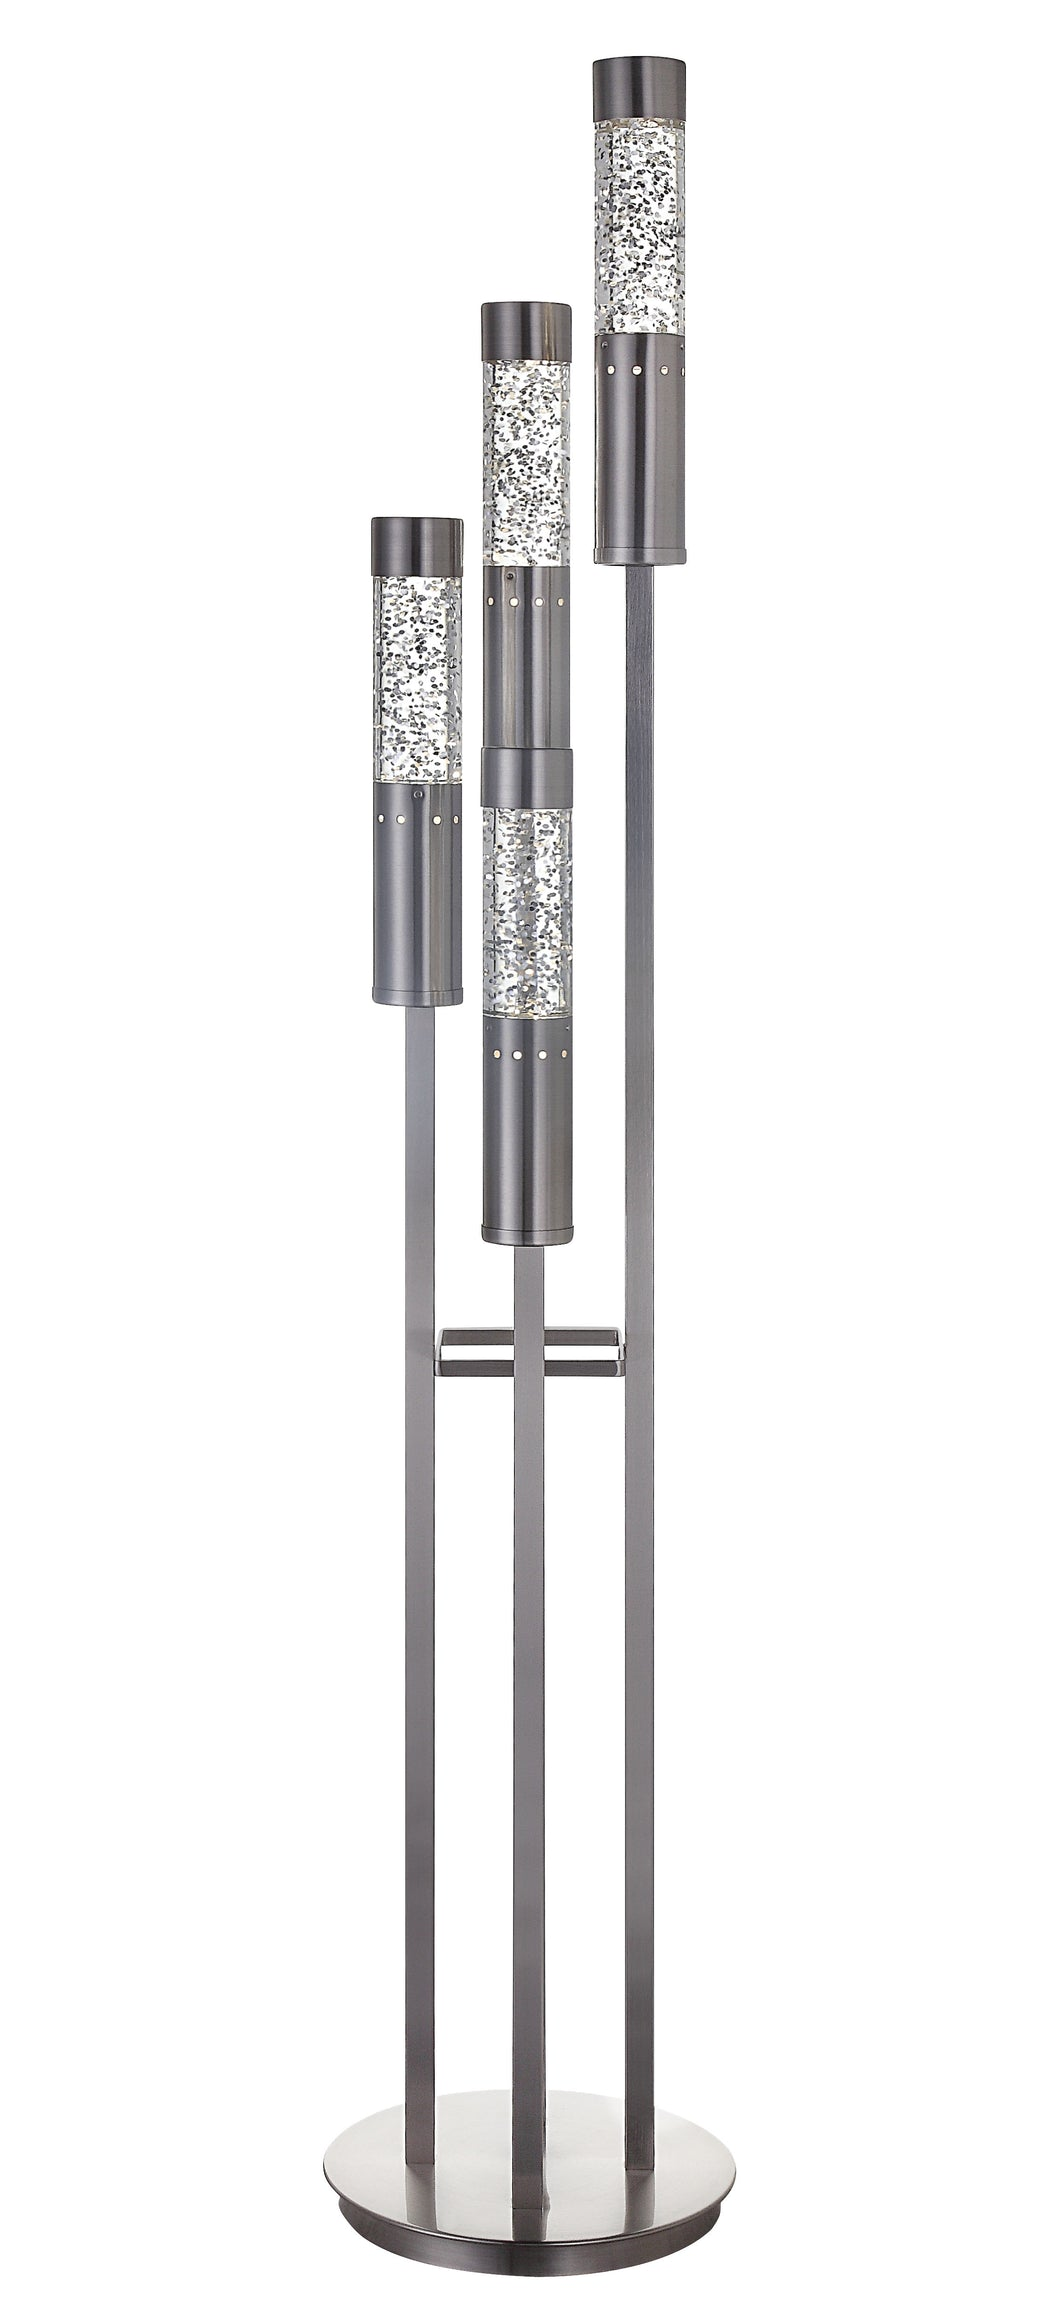 Claus Brushed Nickel Floor Lamp image